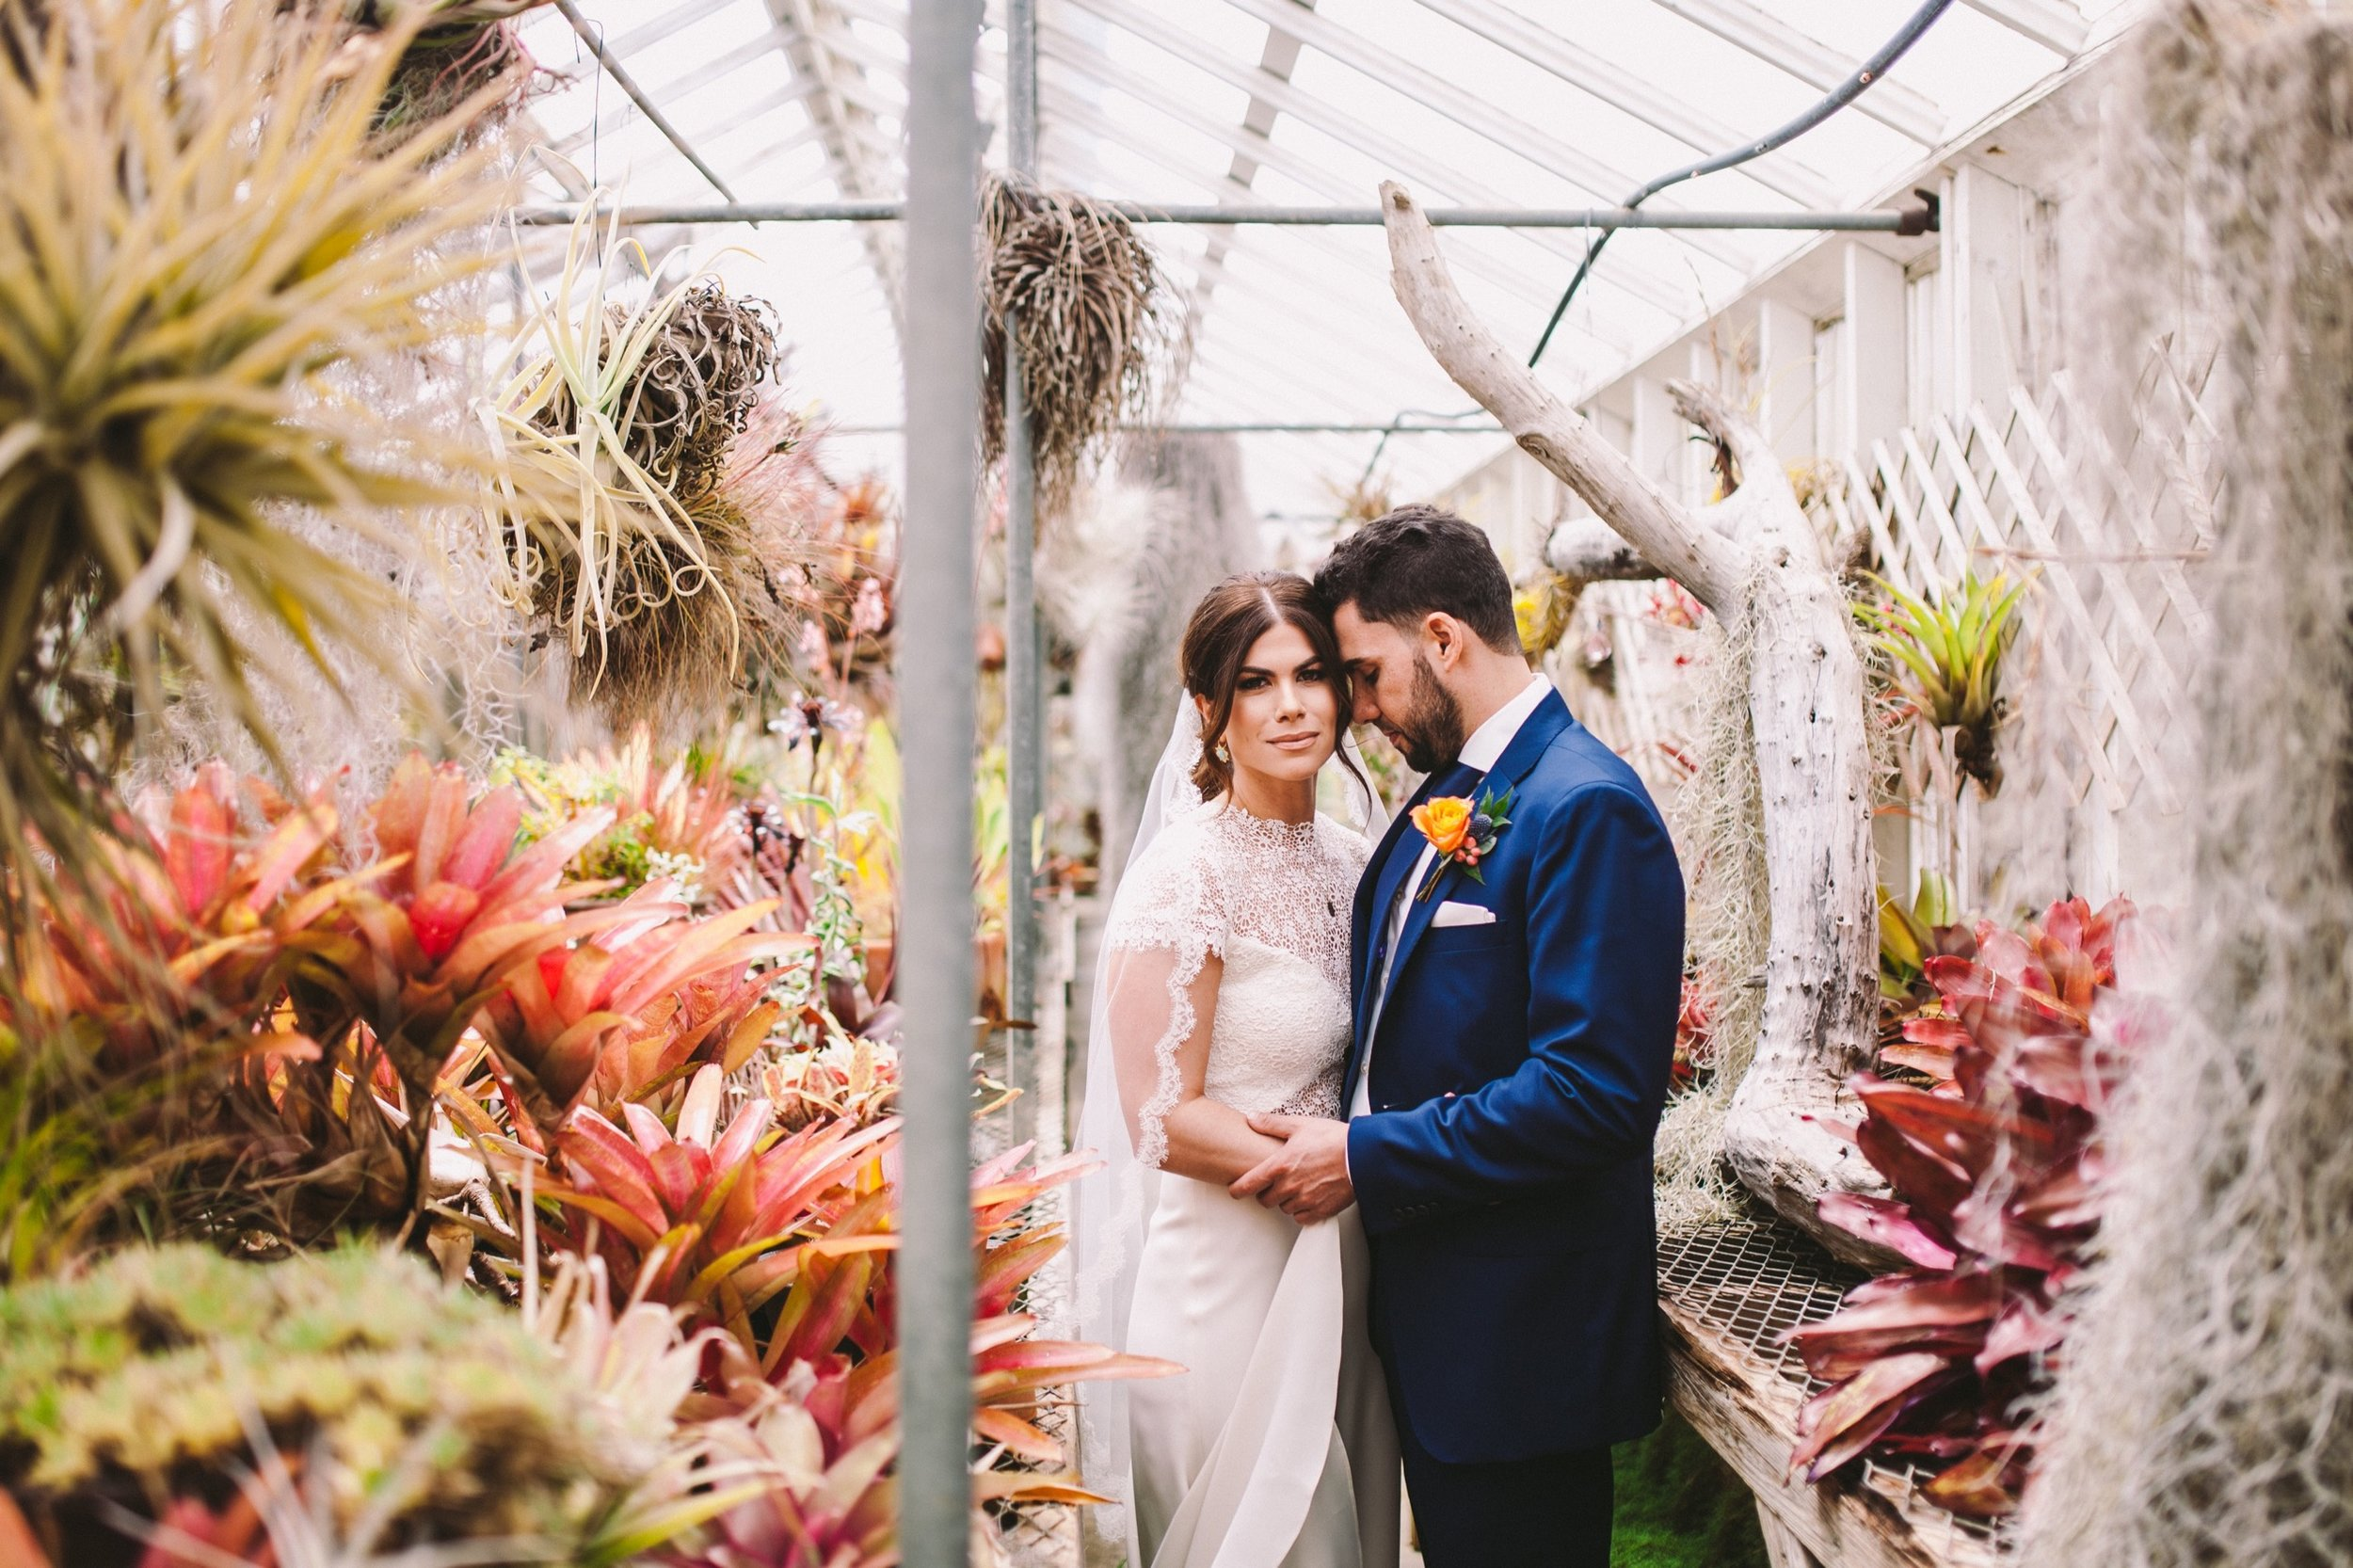 Bride & Groom Portrait in Shelldance Orchid Garden Greenhouse